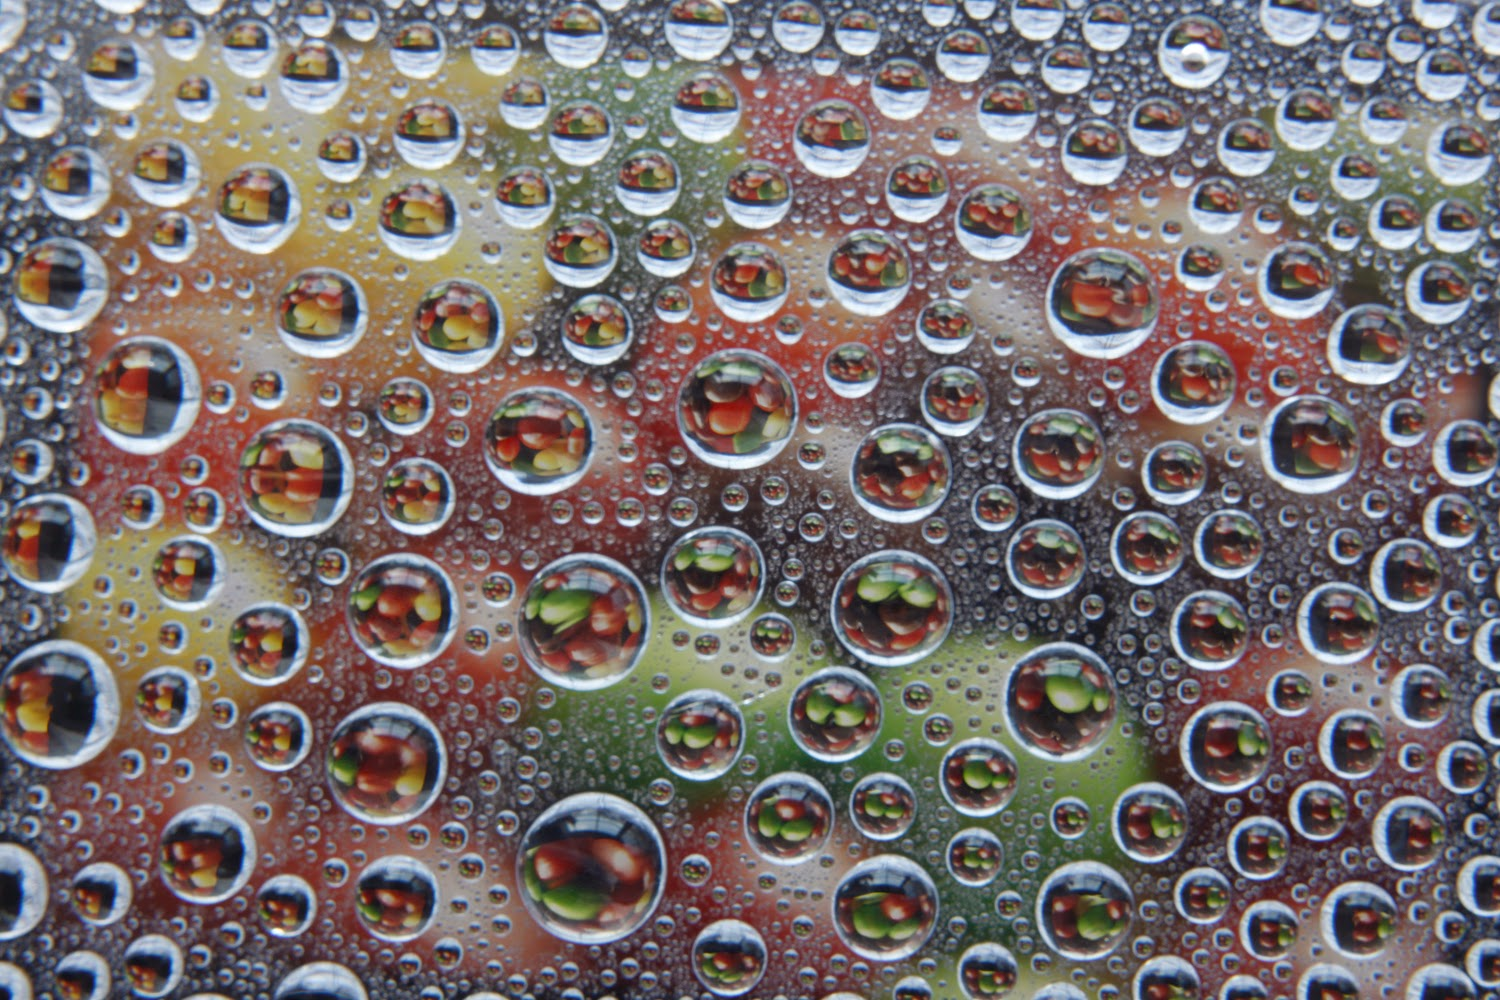 Droplet Refraction of Tablet Image | Boost Your Photography